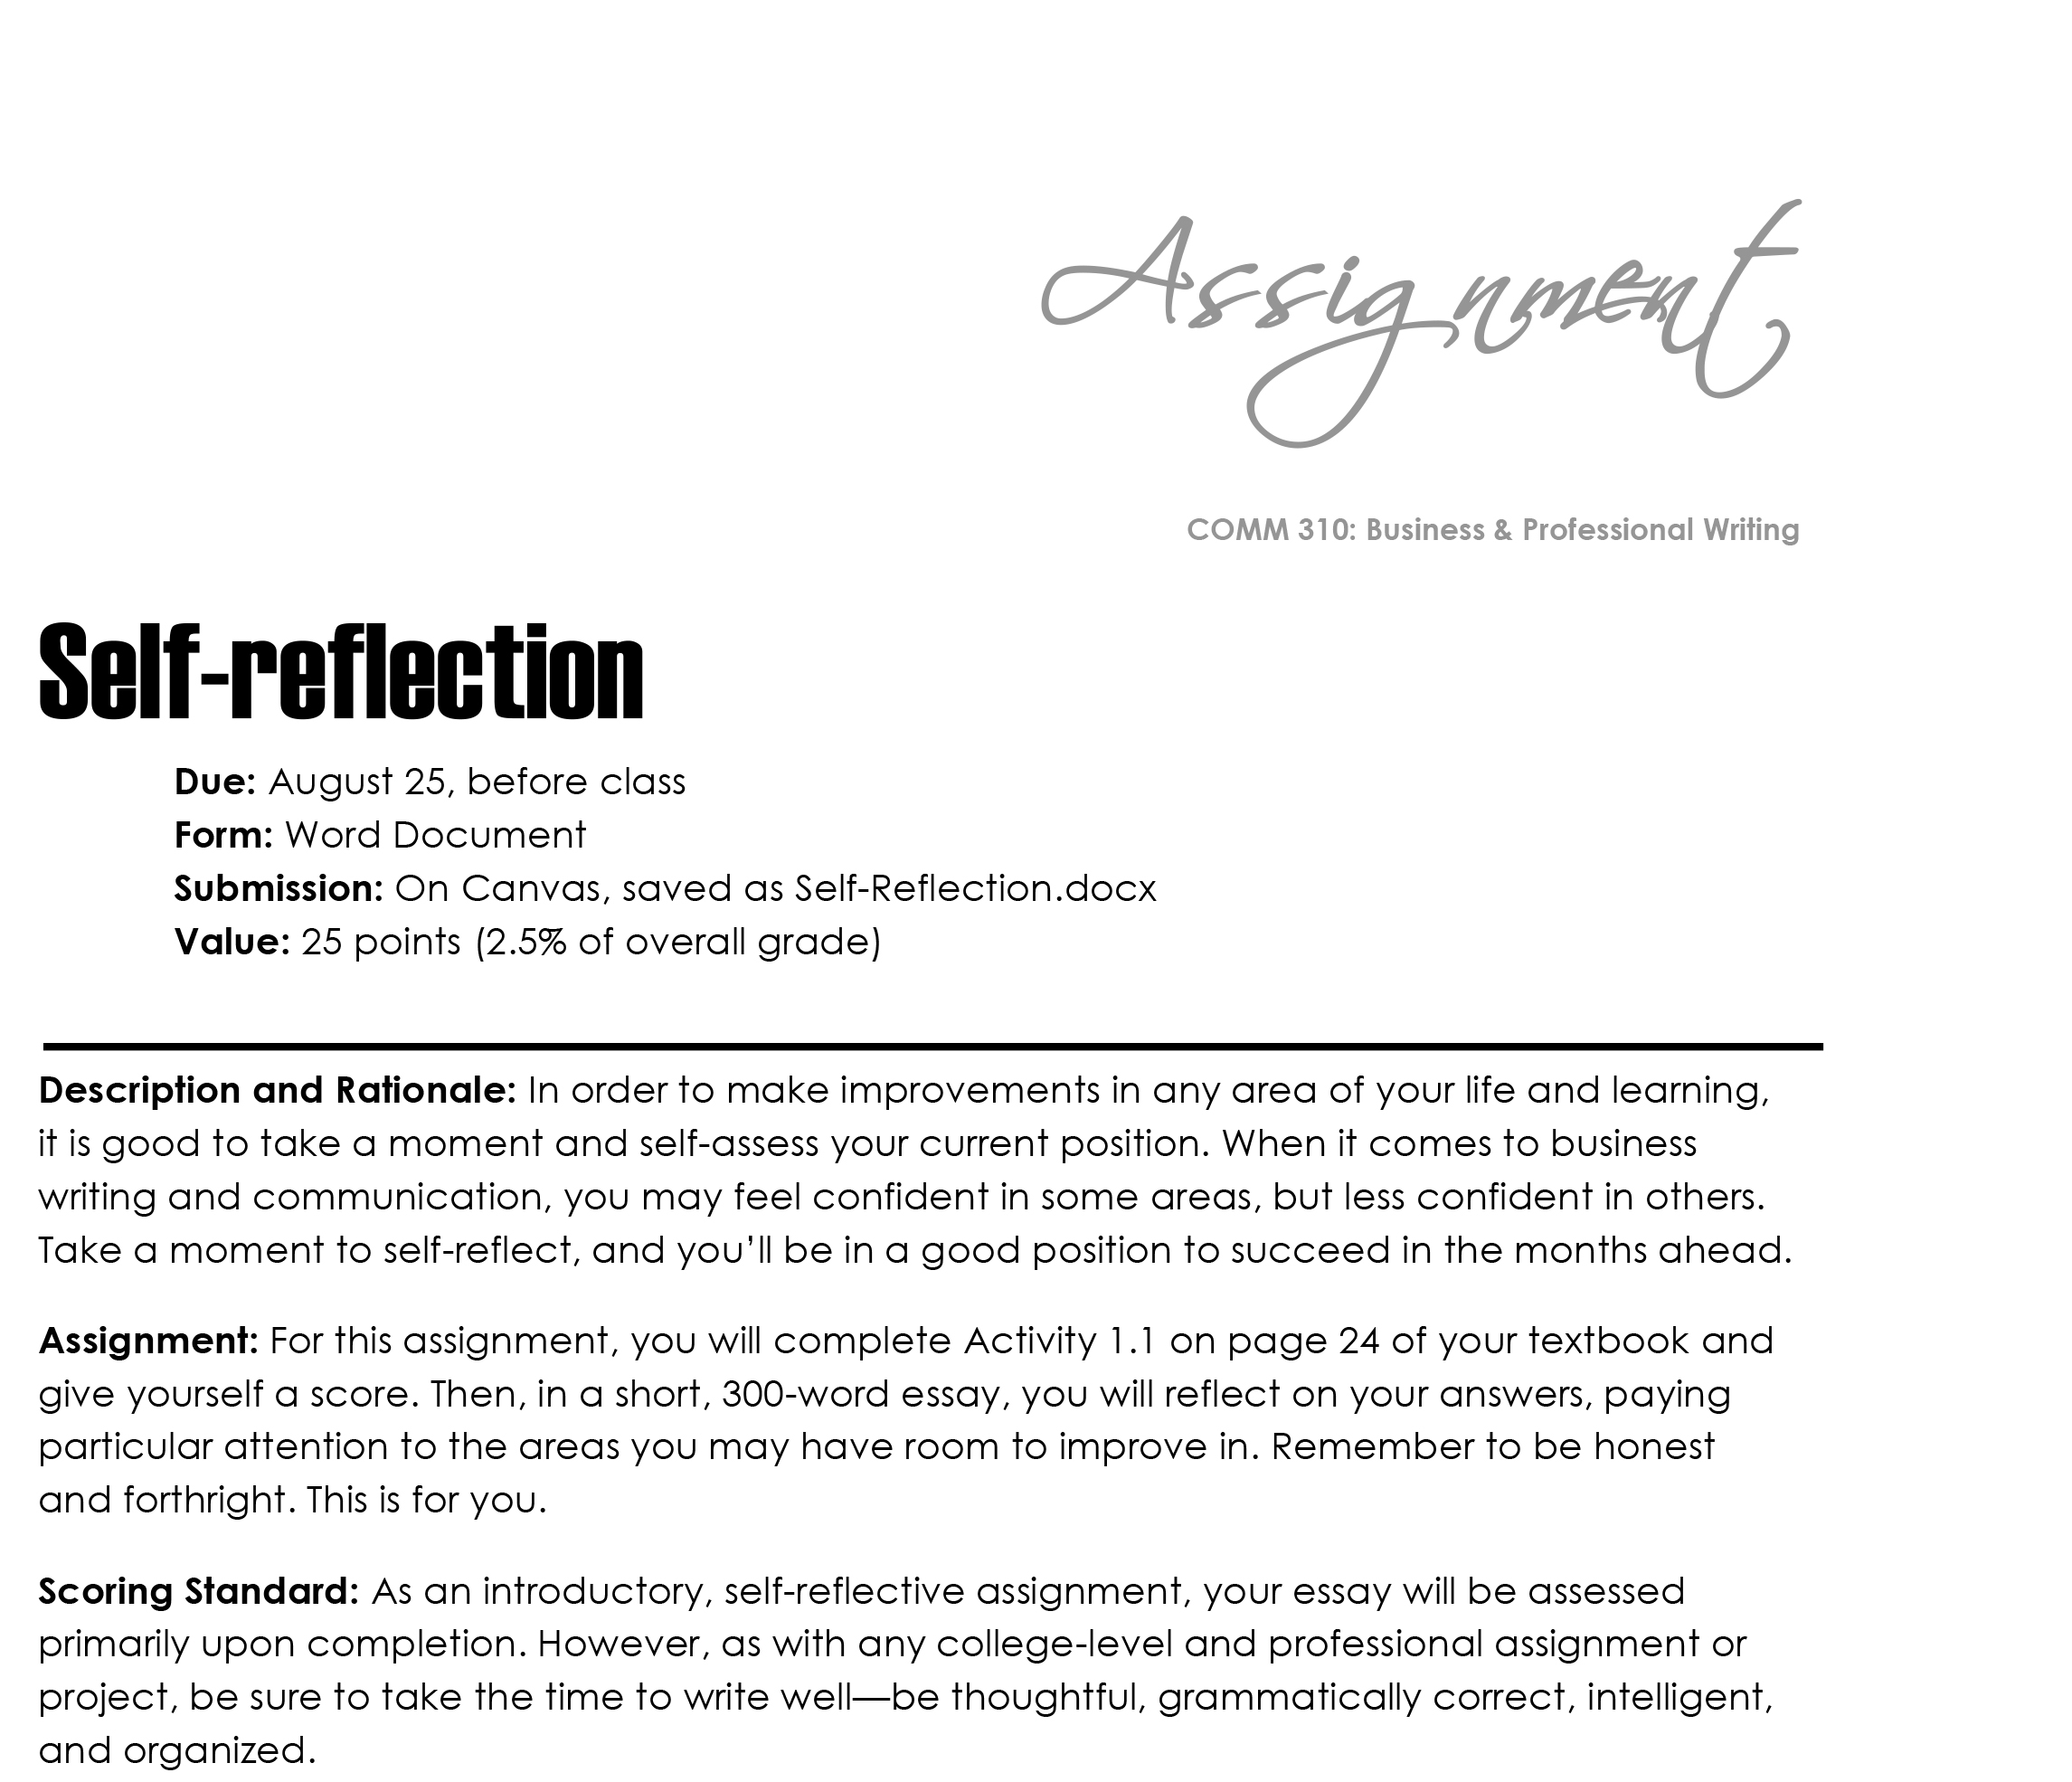 Self-reflection – The Visual Communication Guy: Designing